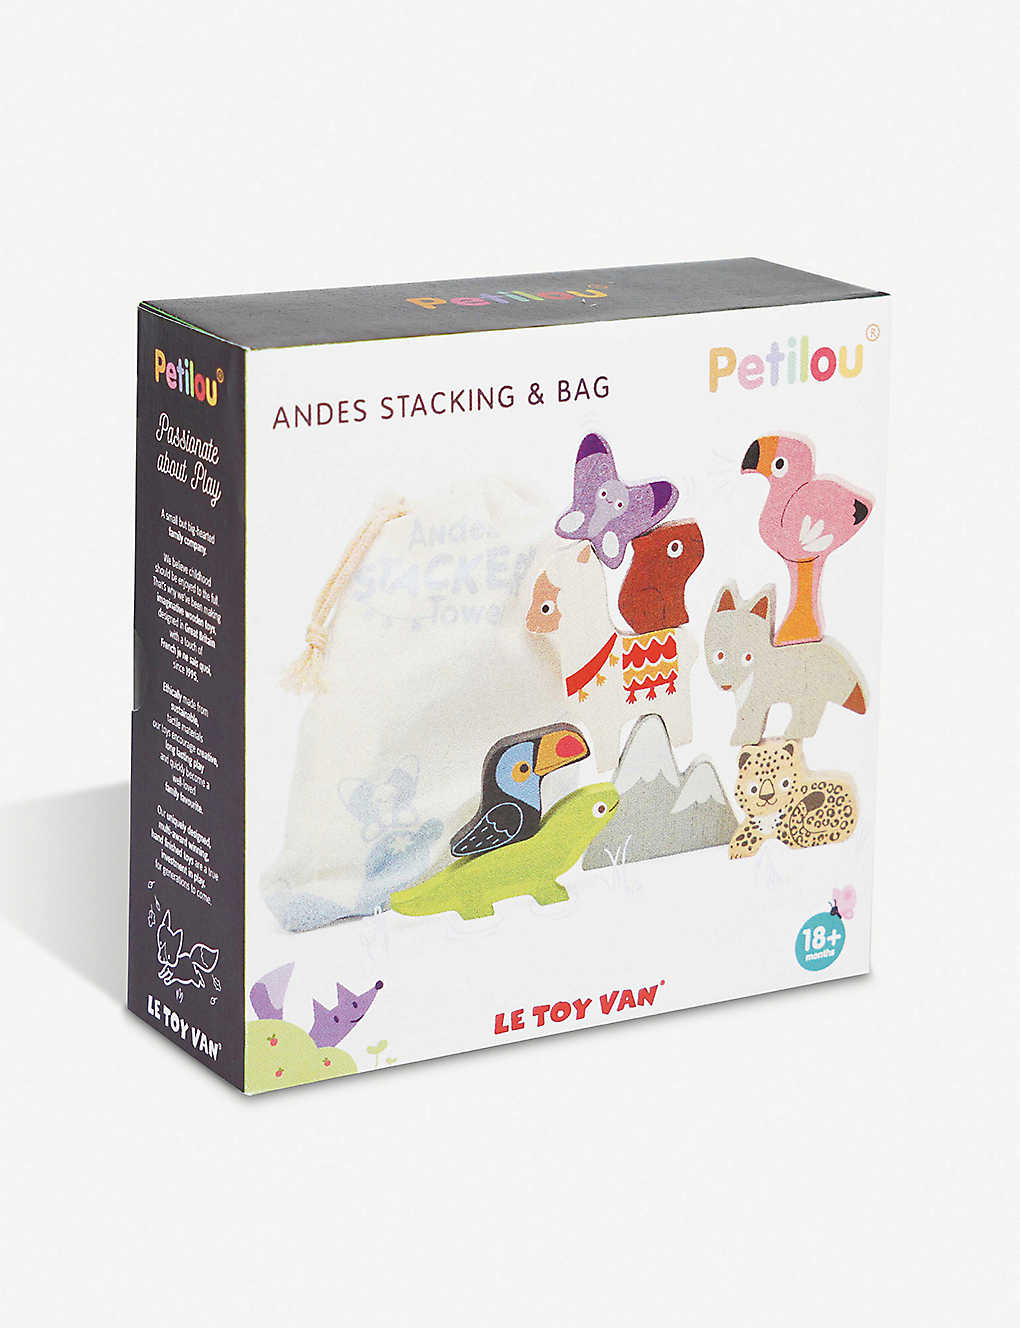 LE TOY VAN: Andes Stacking Tower and Bag